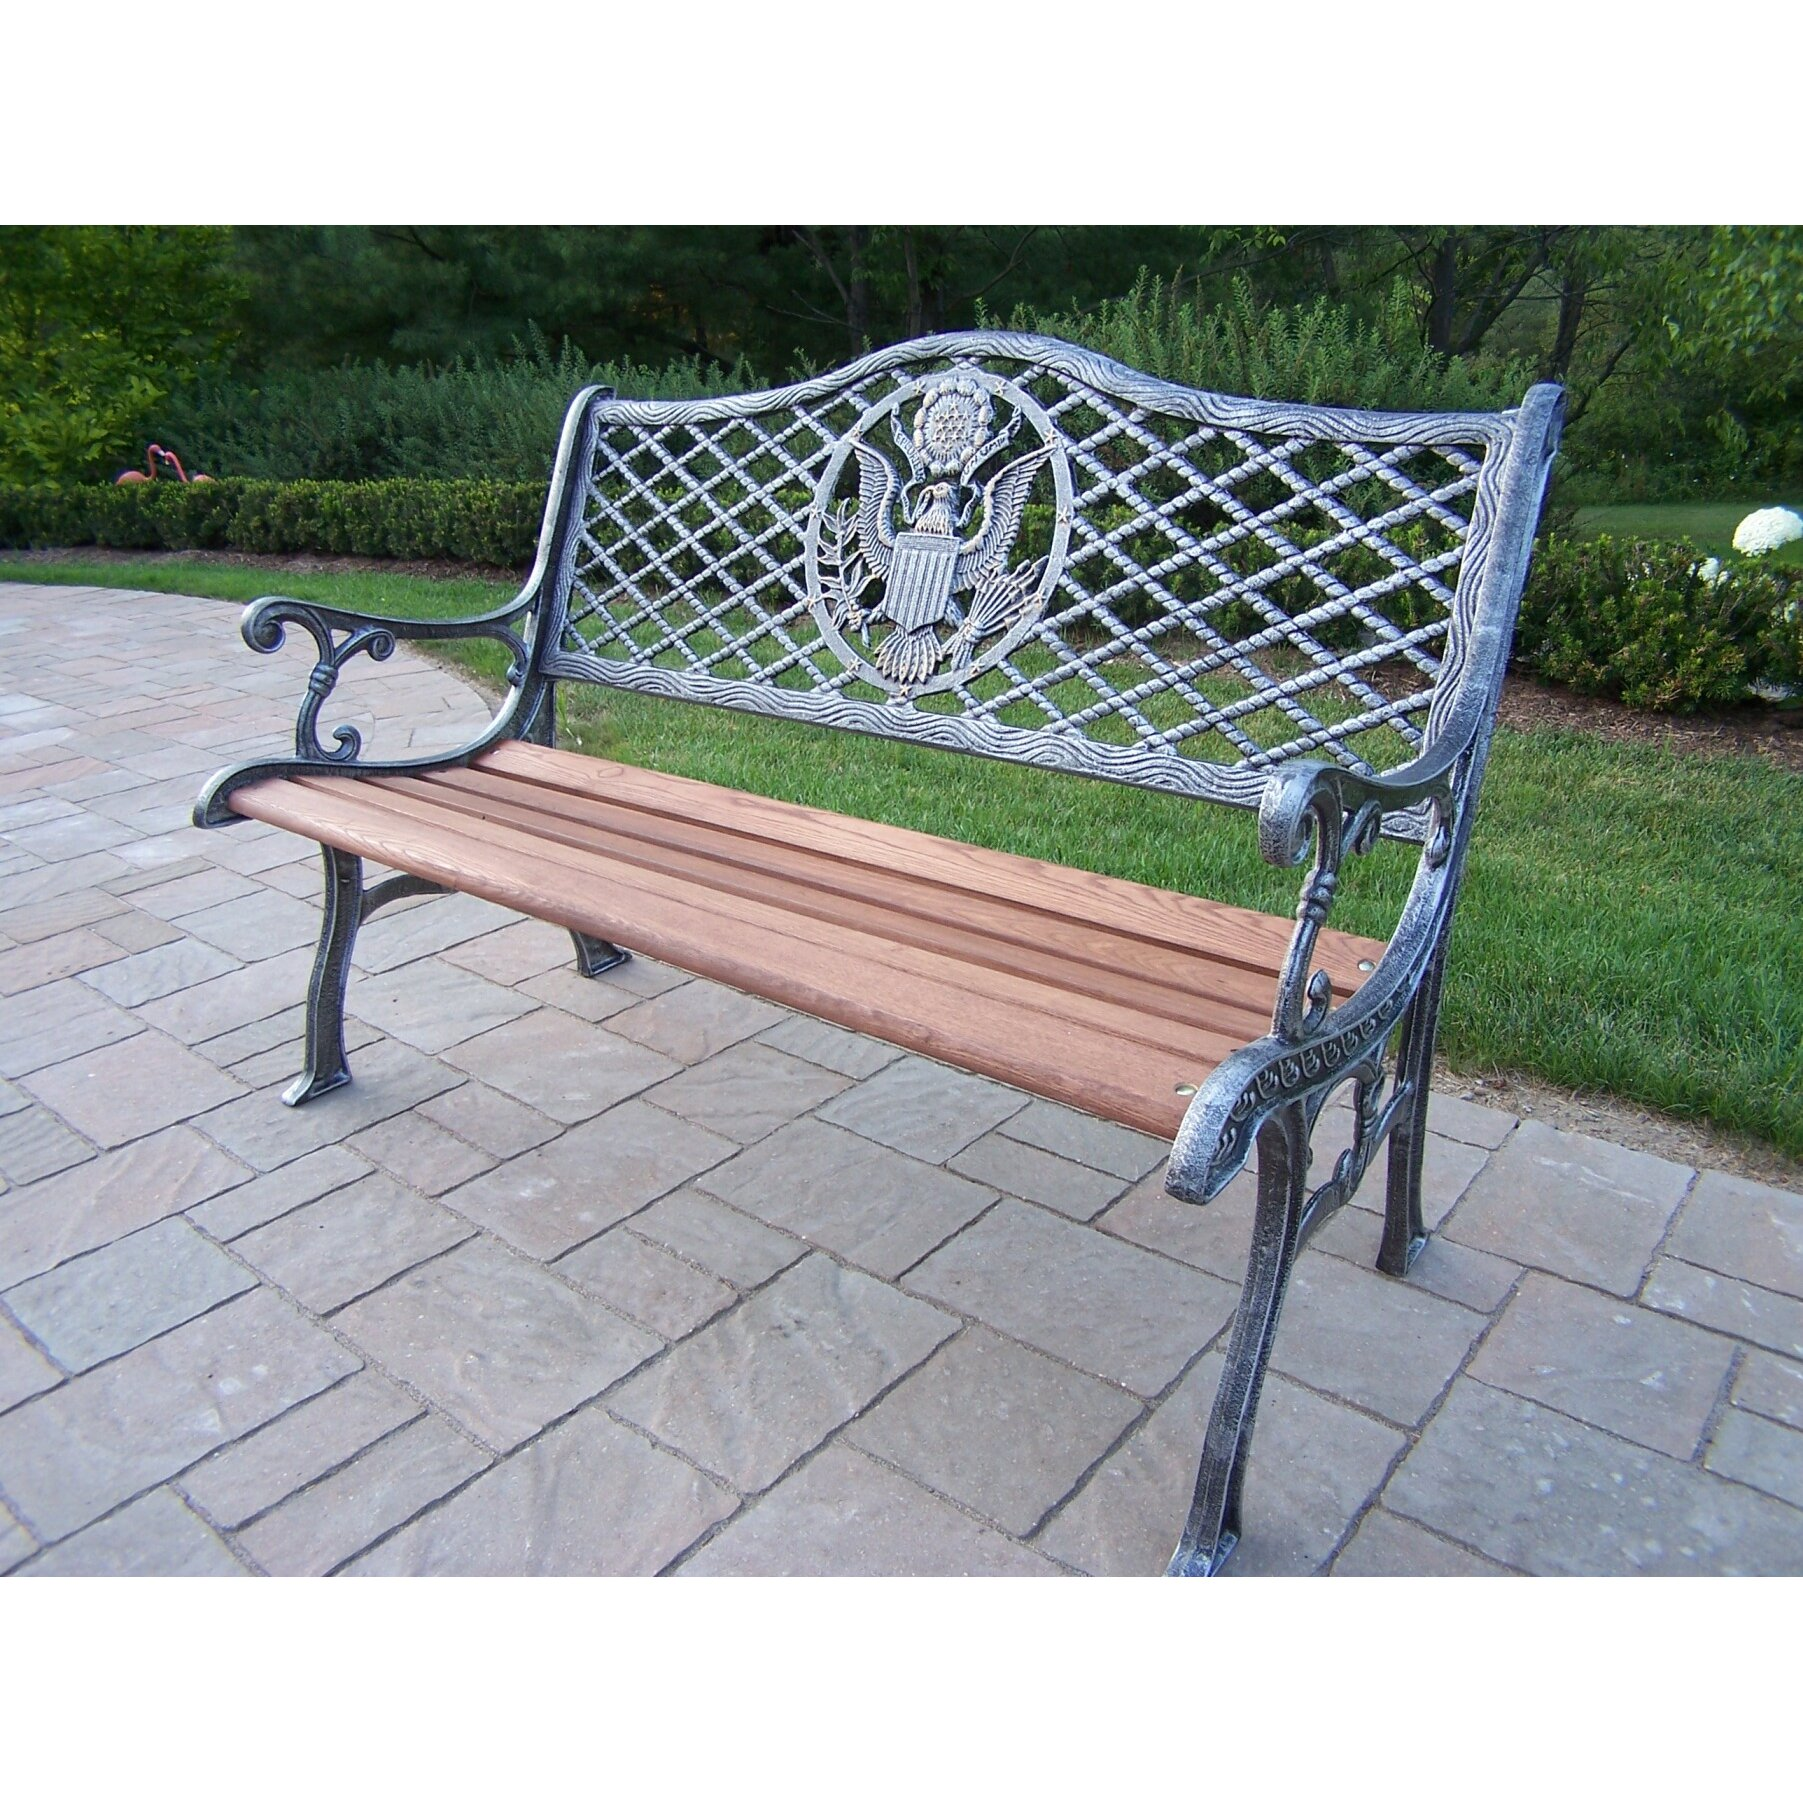 American eagle cast iron and wood garden bench wayfair - Wood and iron garden bench ...